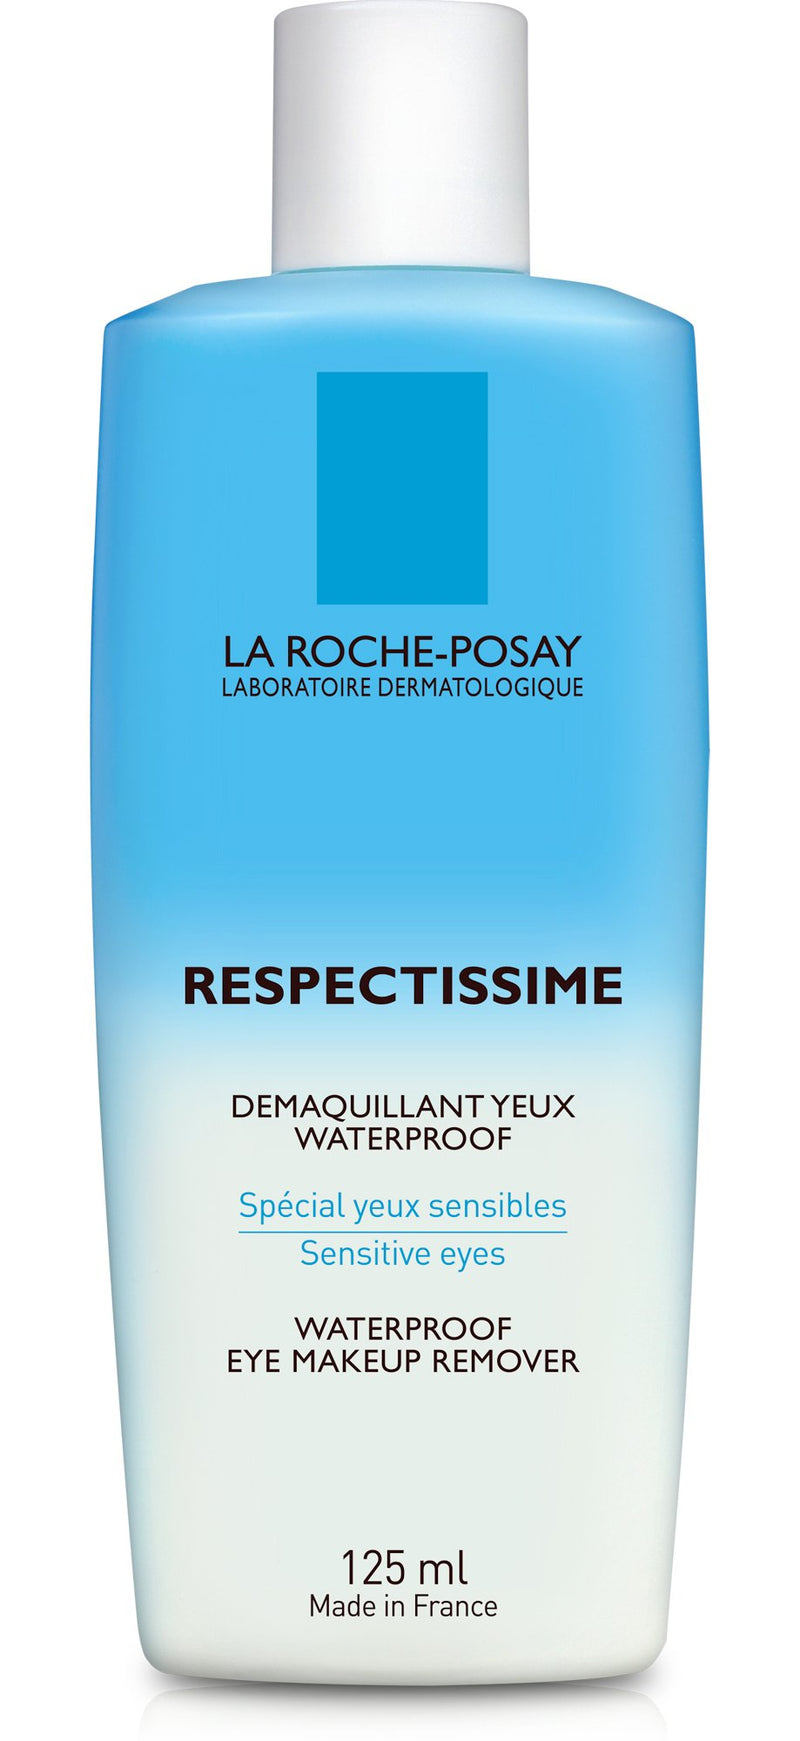 La Roche-Posay Respectissime Face & Eye Makeup Remover